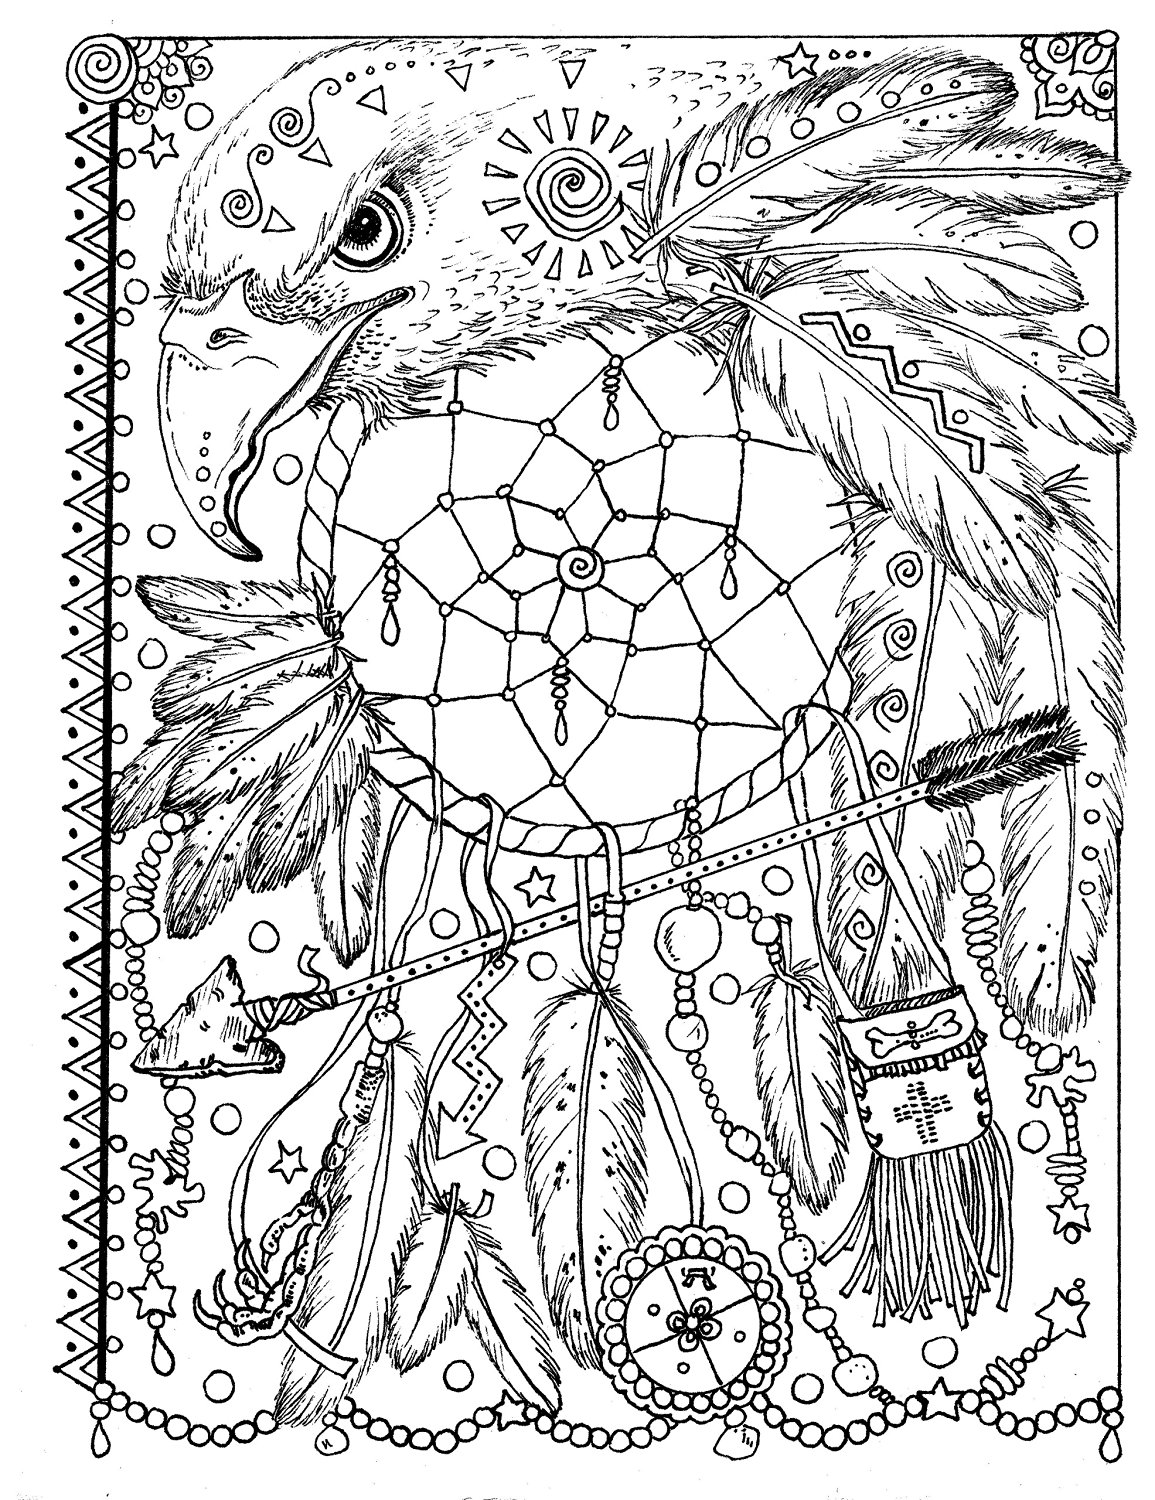 Jazza Coloring Book Free Download - Coloring wall